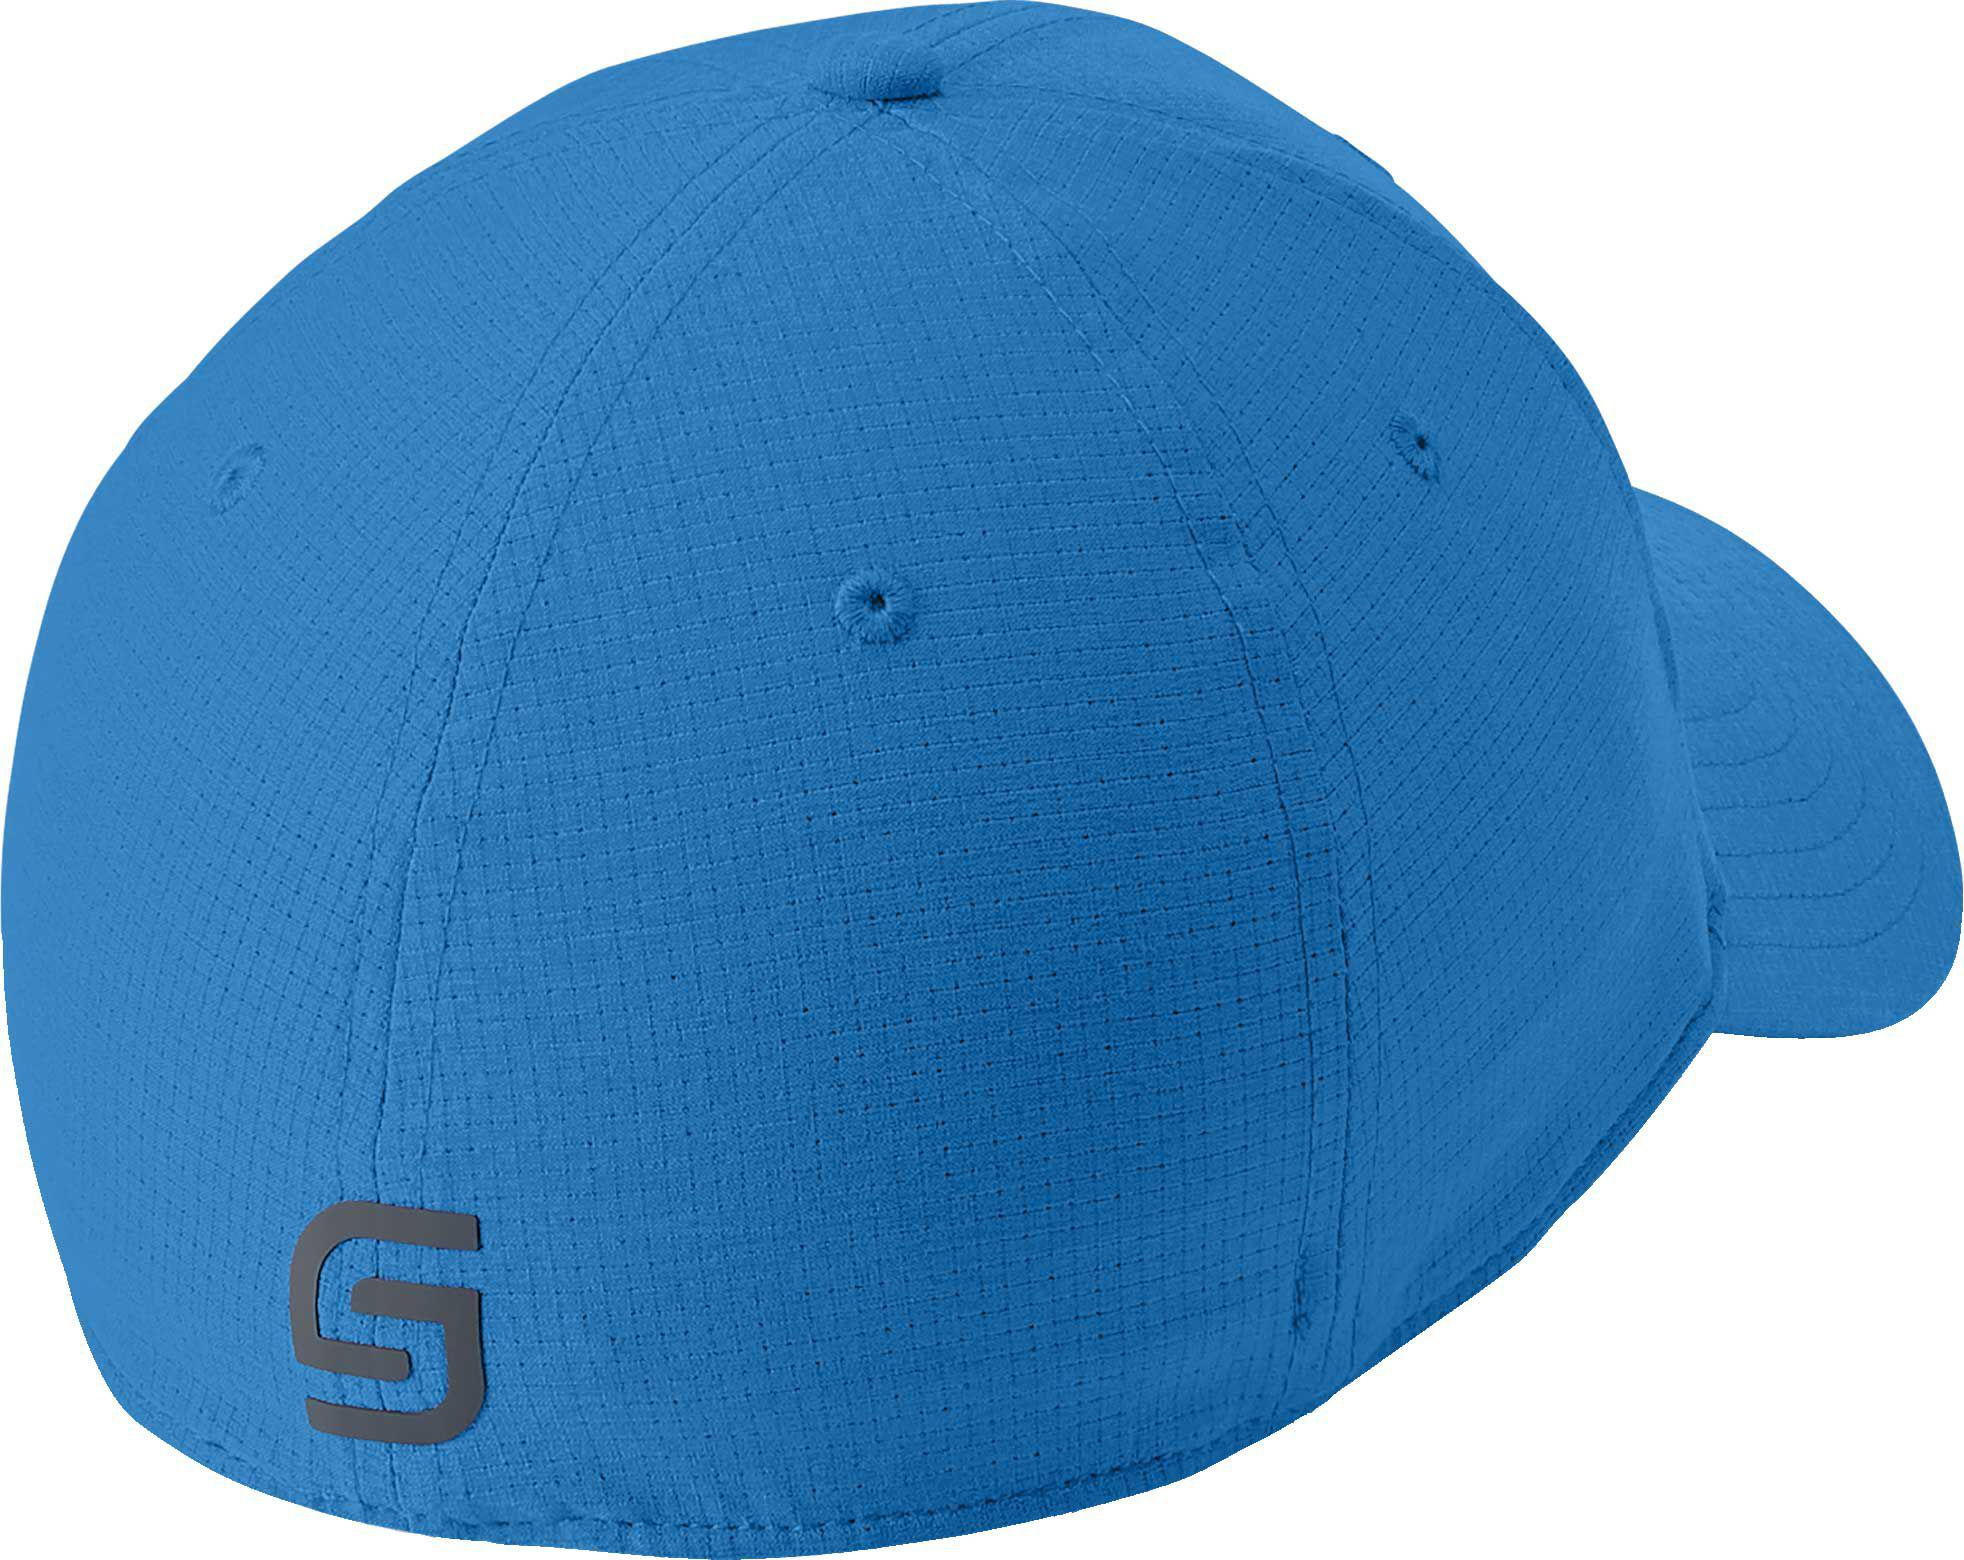 74080f64 Under Armour Jordan Spieth Official Tour Golf Hat in Blue for Men - Lyst